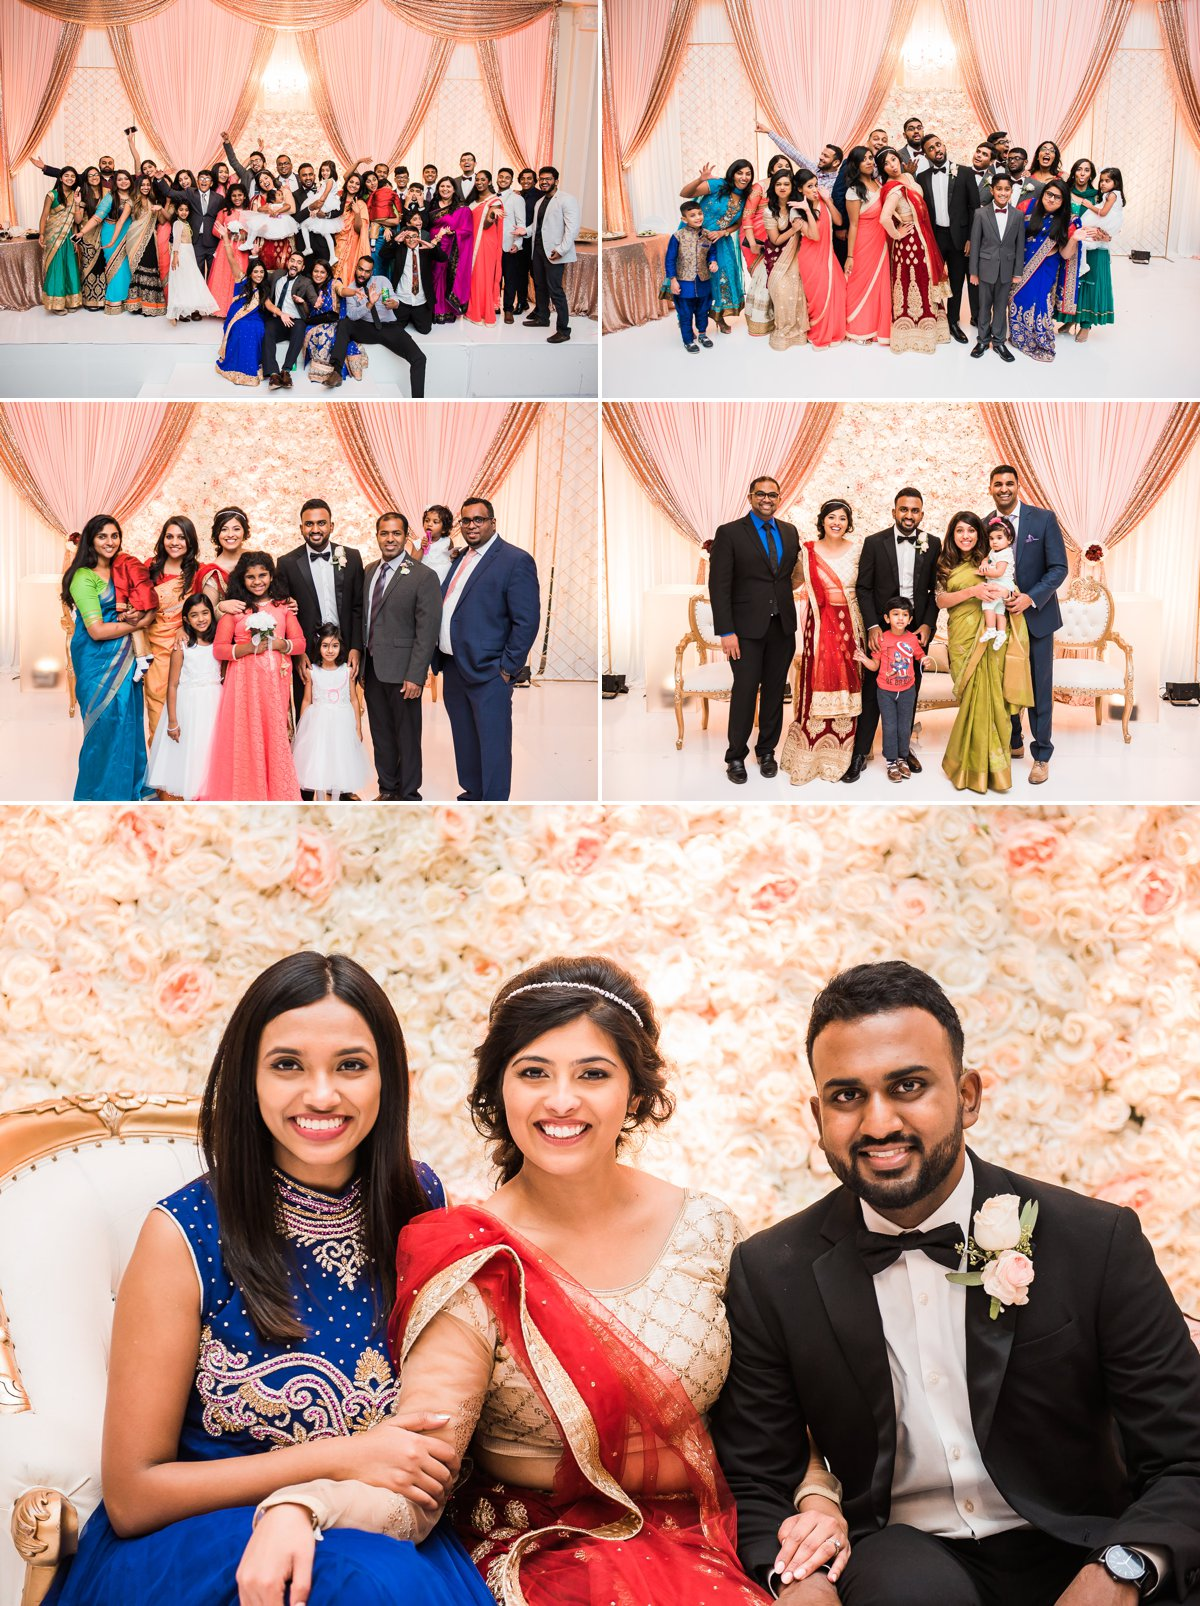 Grace-Allen South Asian Wedding and Bridal Photos by Nate Messarra